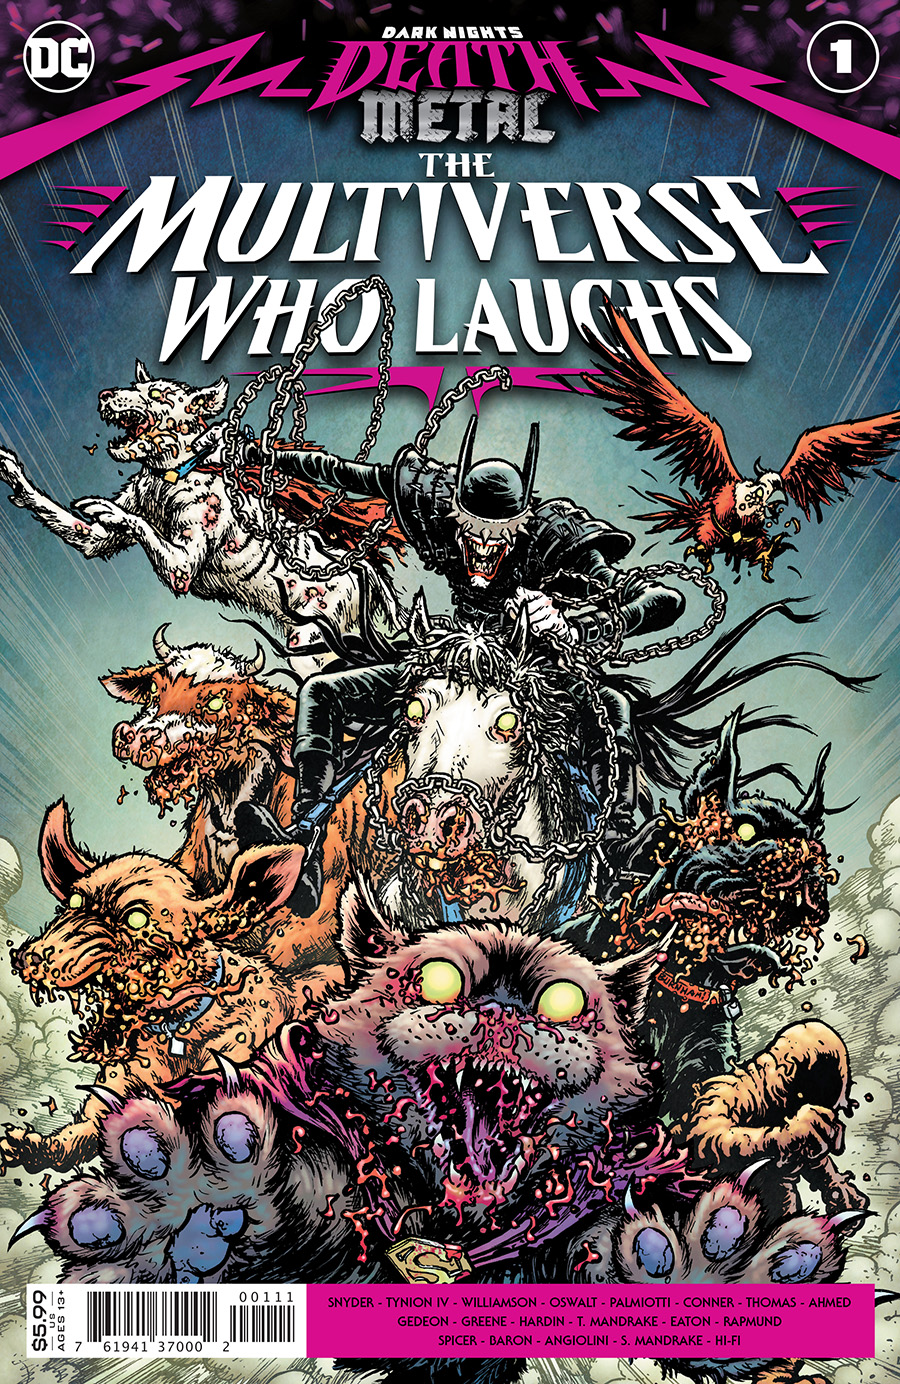 Dark Nights: Death Metal - Multiverse Who Laughs  #1 One Shot